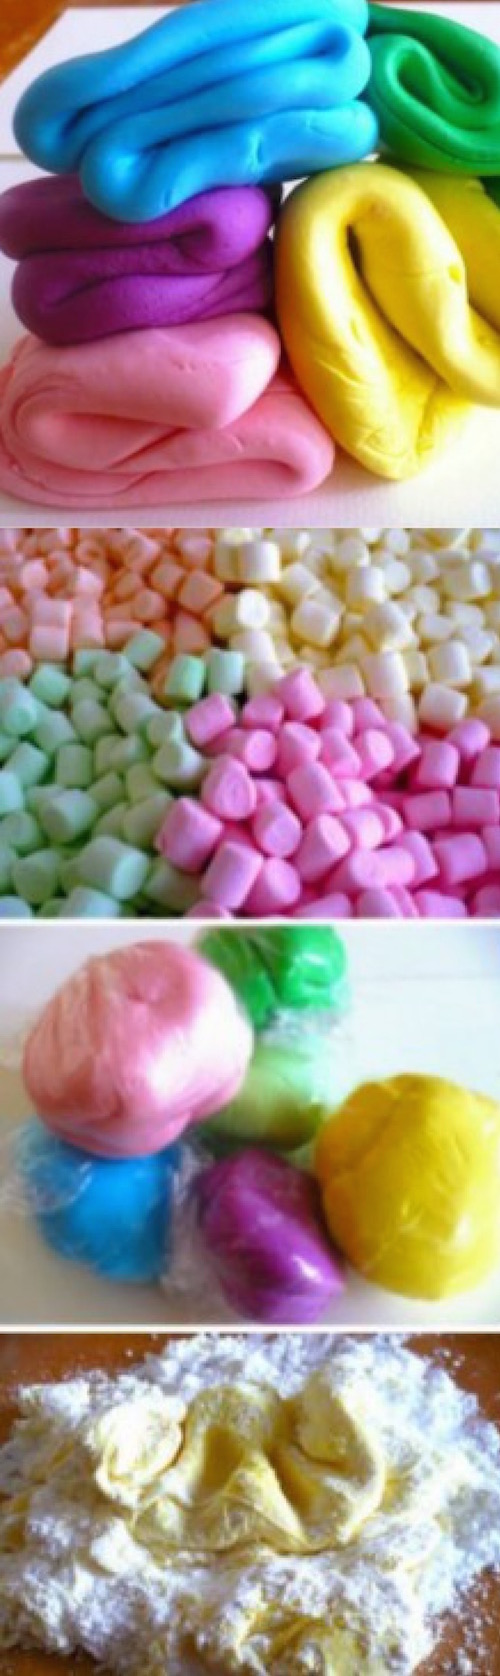 This is MARSHMALLOW RAINBOW FONDANT and my guess is that it tastes delicious! Use it to decorate desserts!